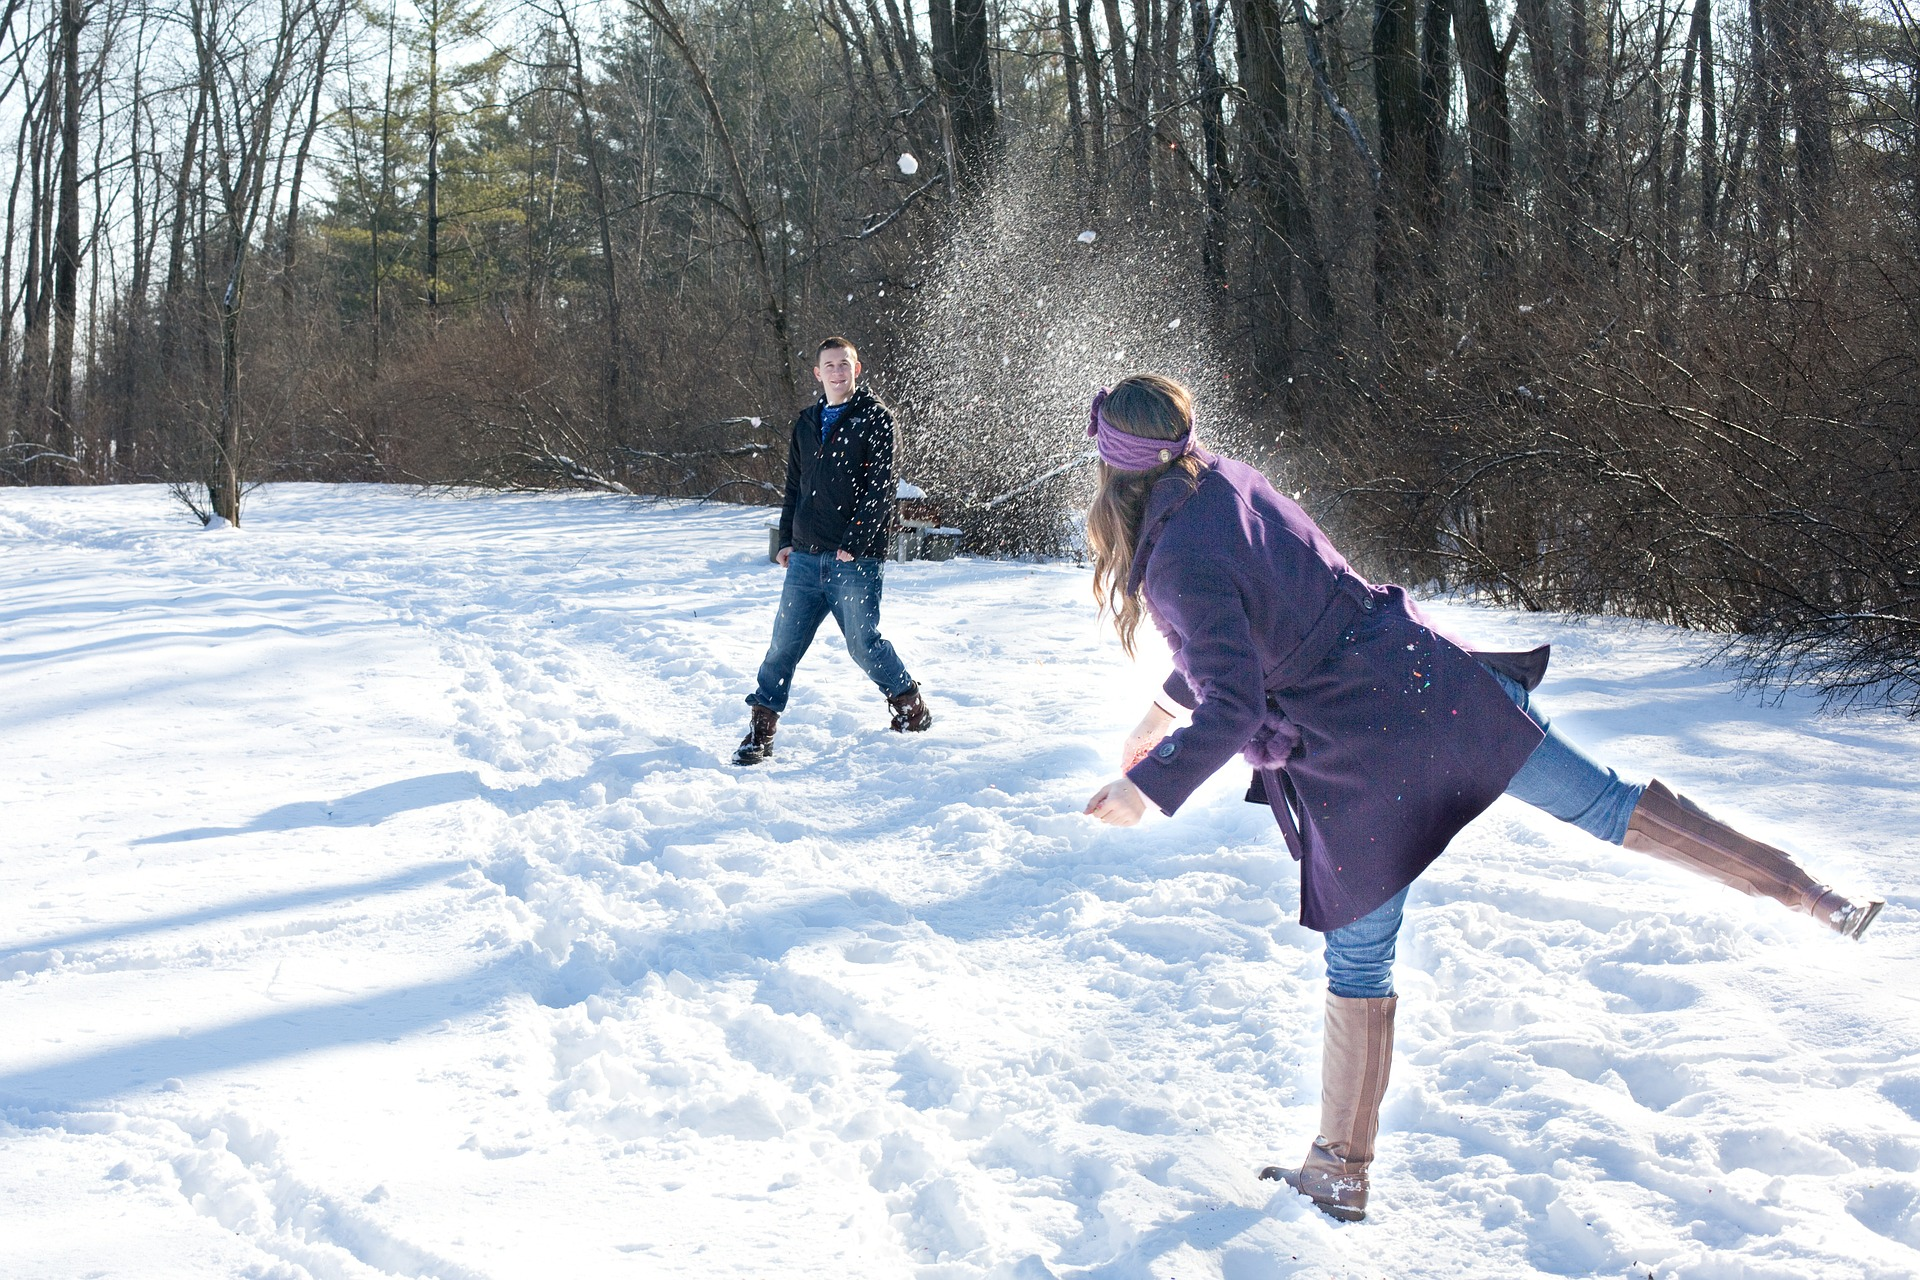 Fun Activities to Do This Winter in Collingwood